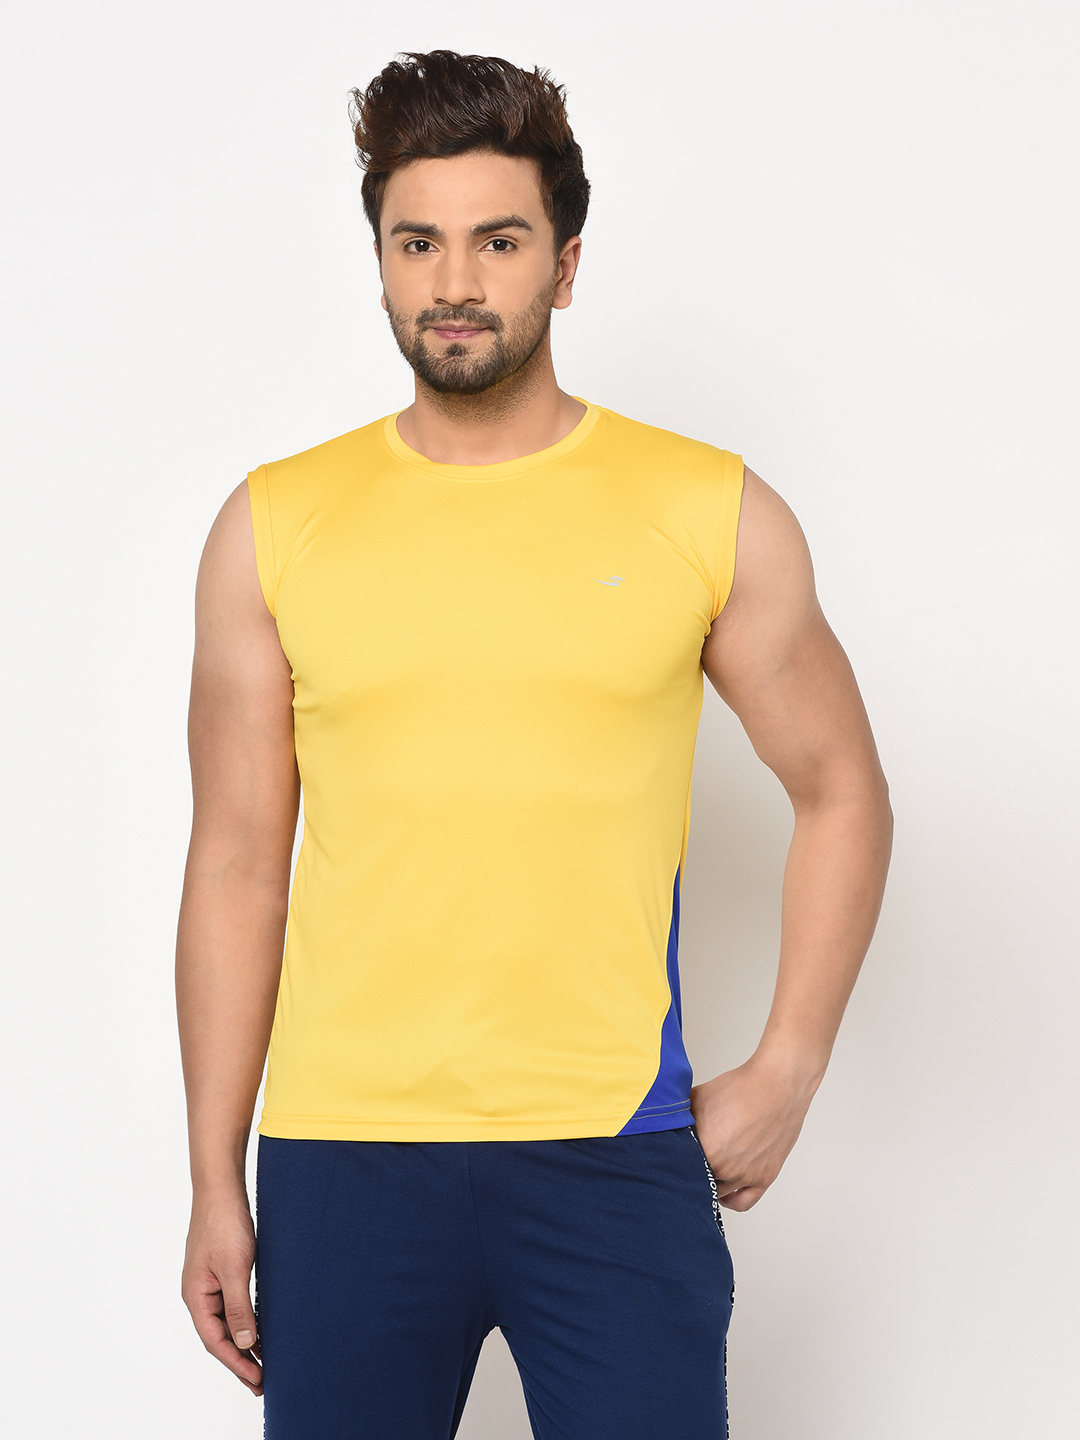 V2 Kart Men Drifit Sleeve Less Colorblocked Round Neck Tights (Yellow)